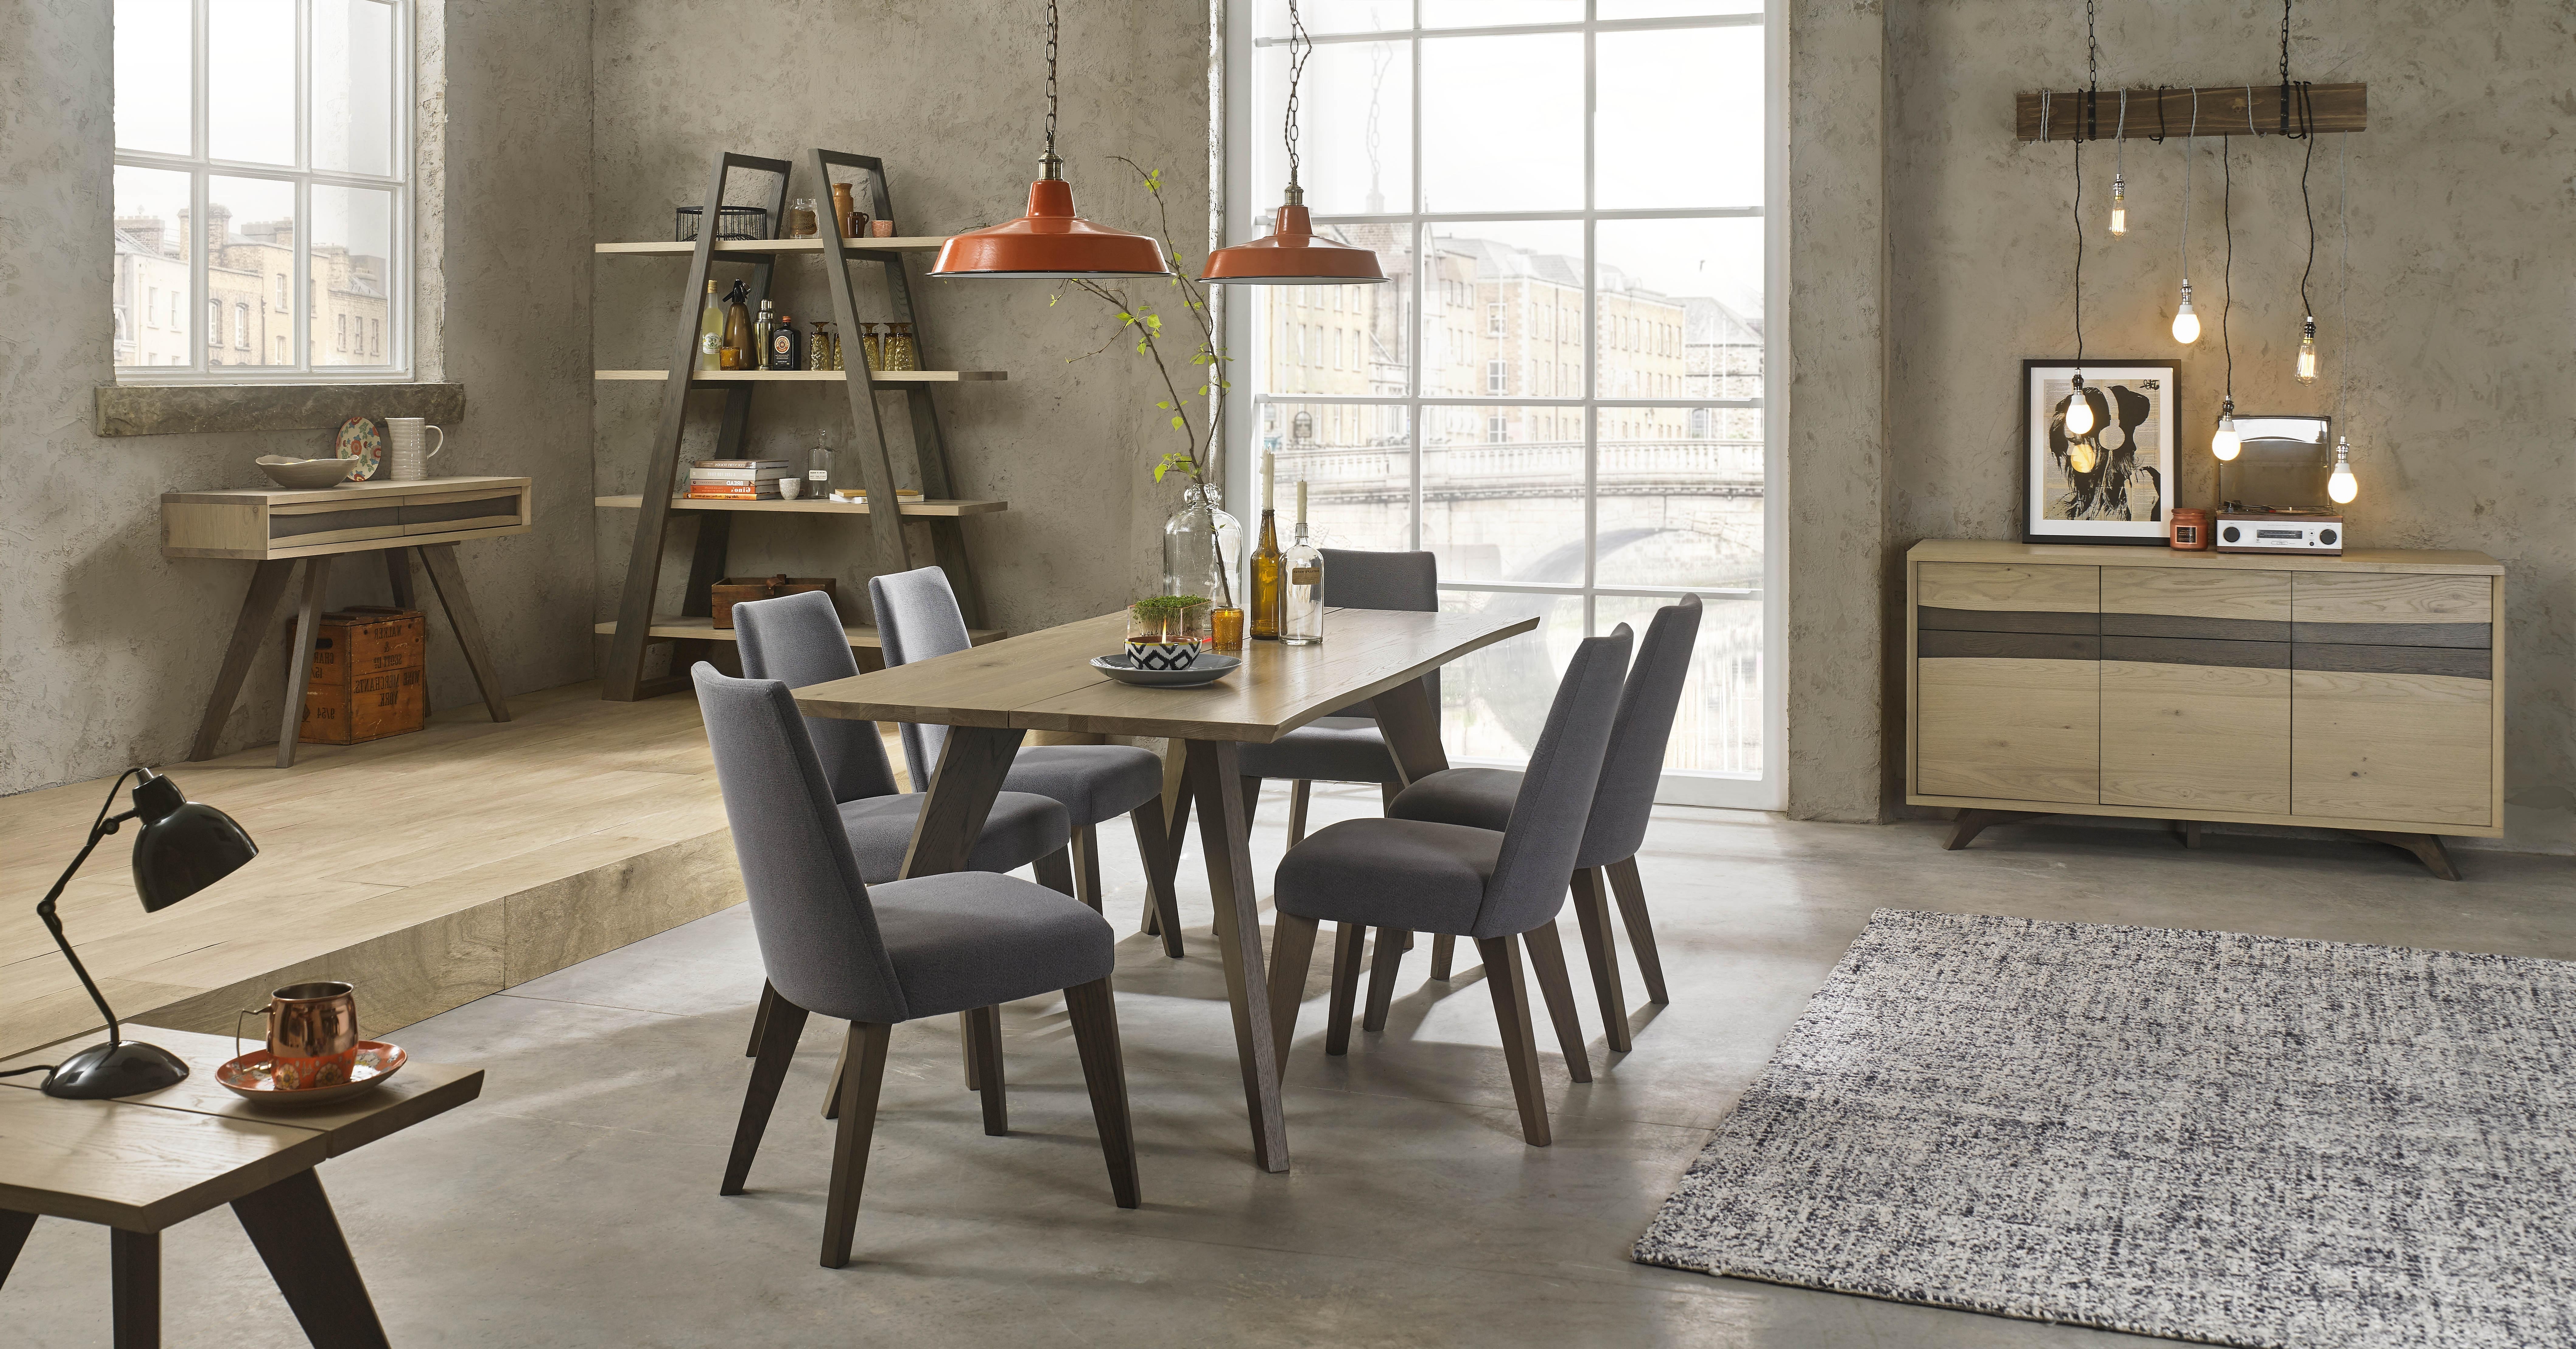 Most Recent Dining Room – Area With Product Type: Dining Tables For Oak Dining Tables And Leather Chairs (View 8 of 25)